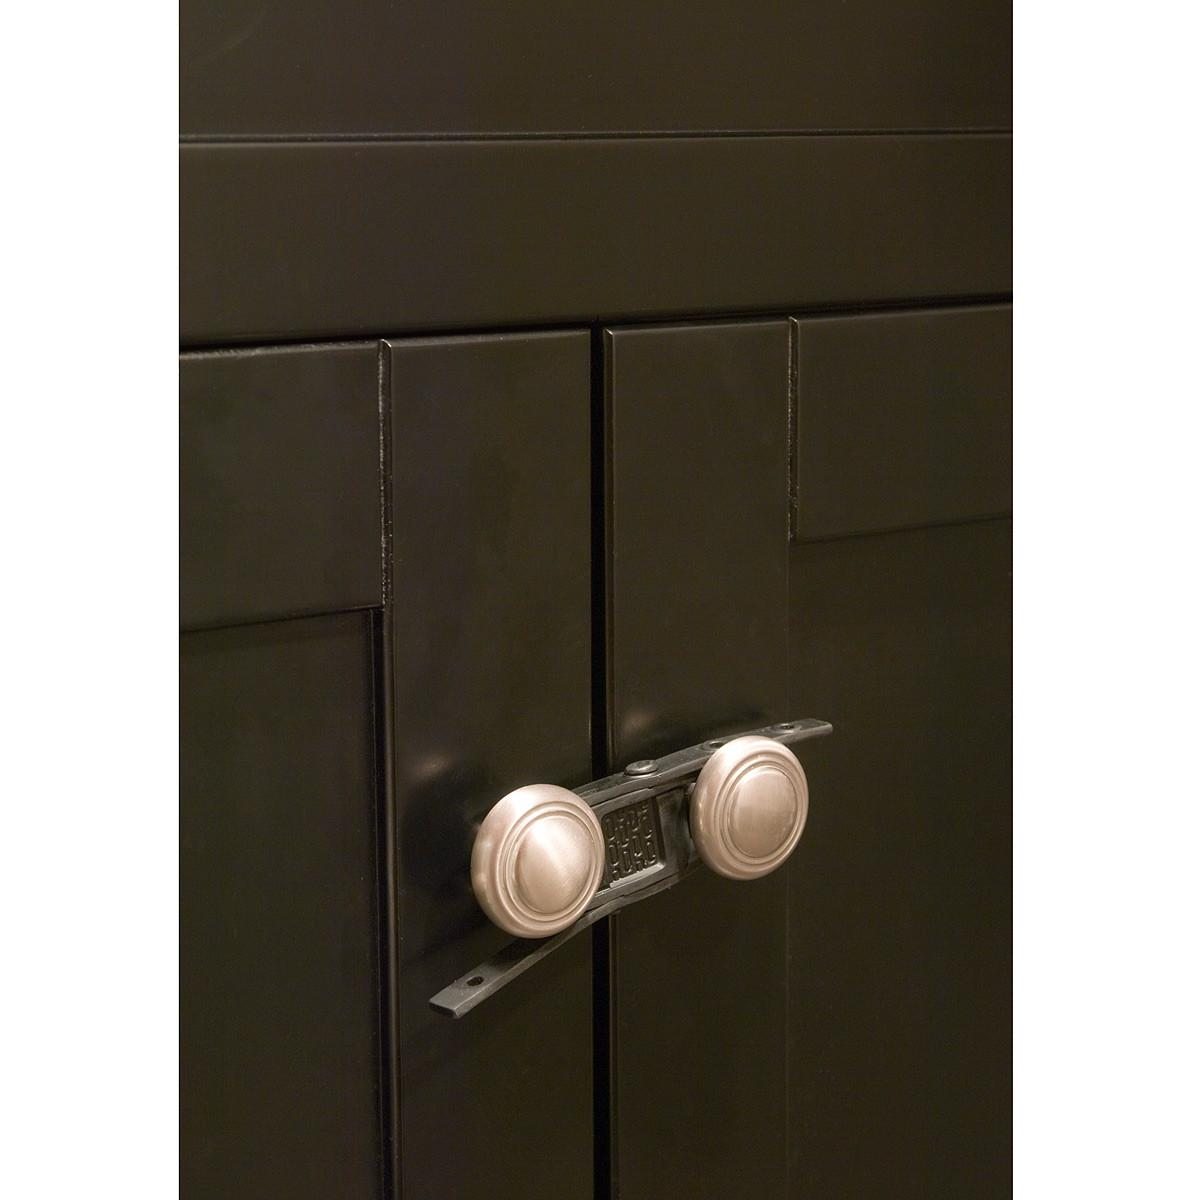 Childproof Cabinet Locks Home Depot